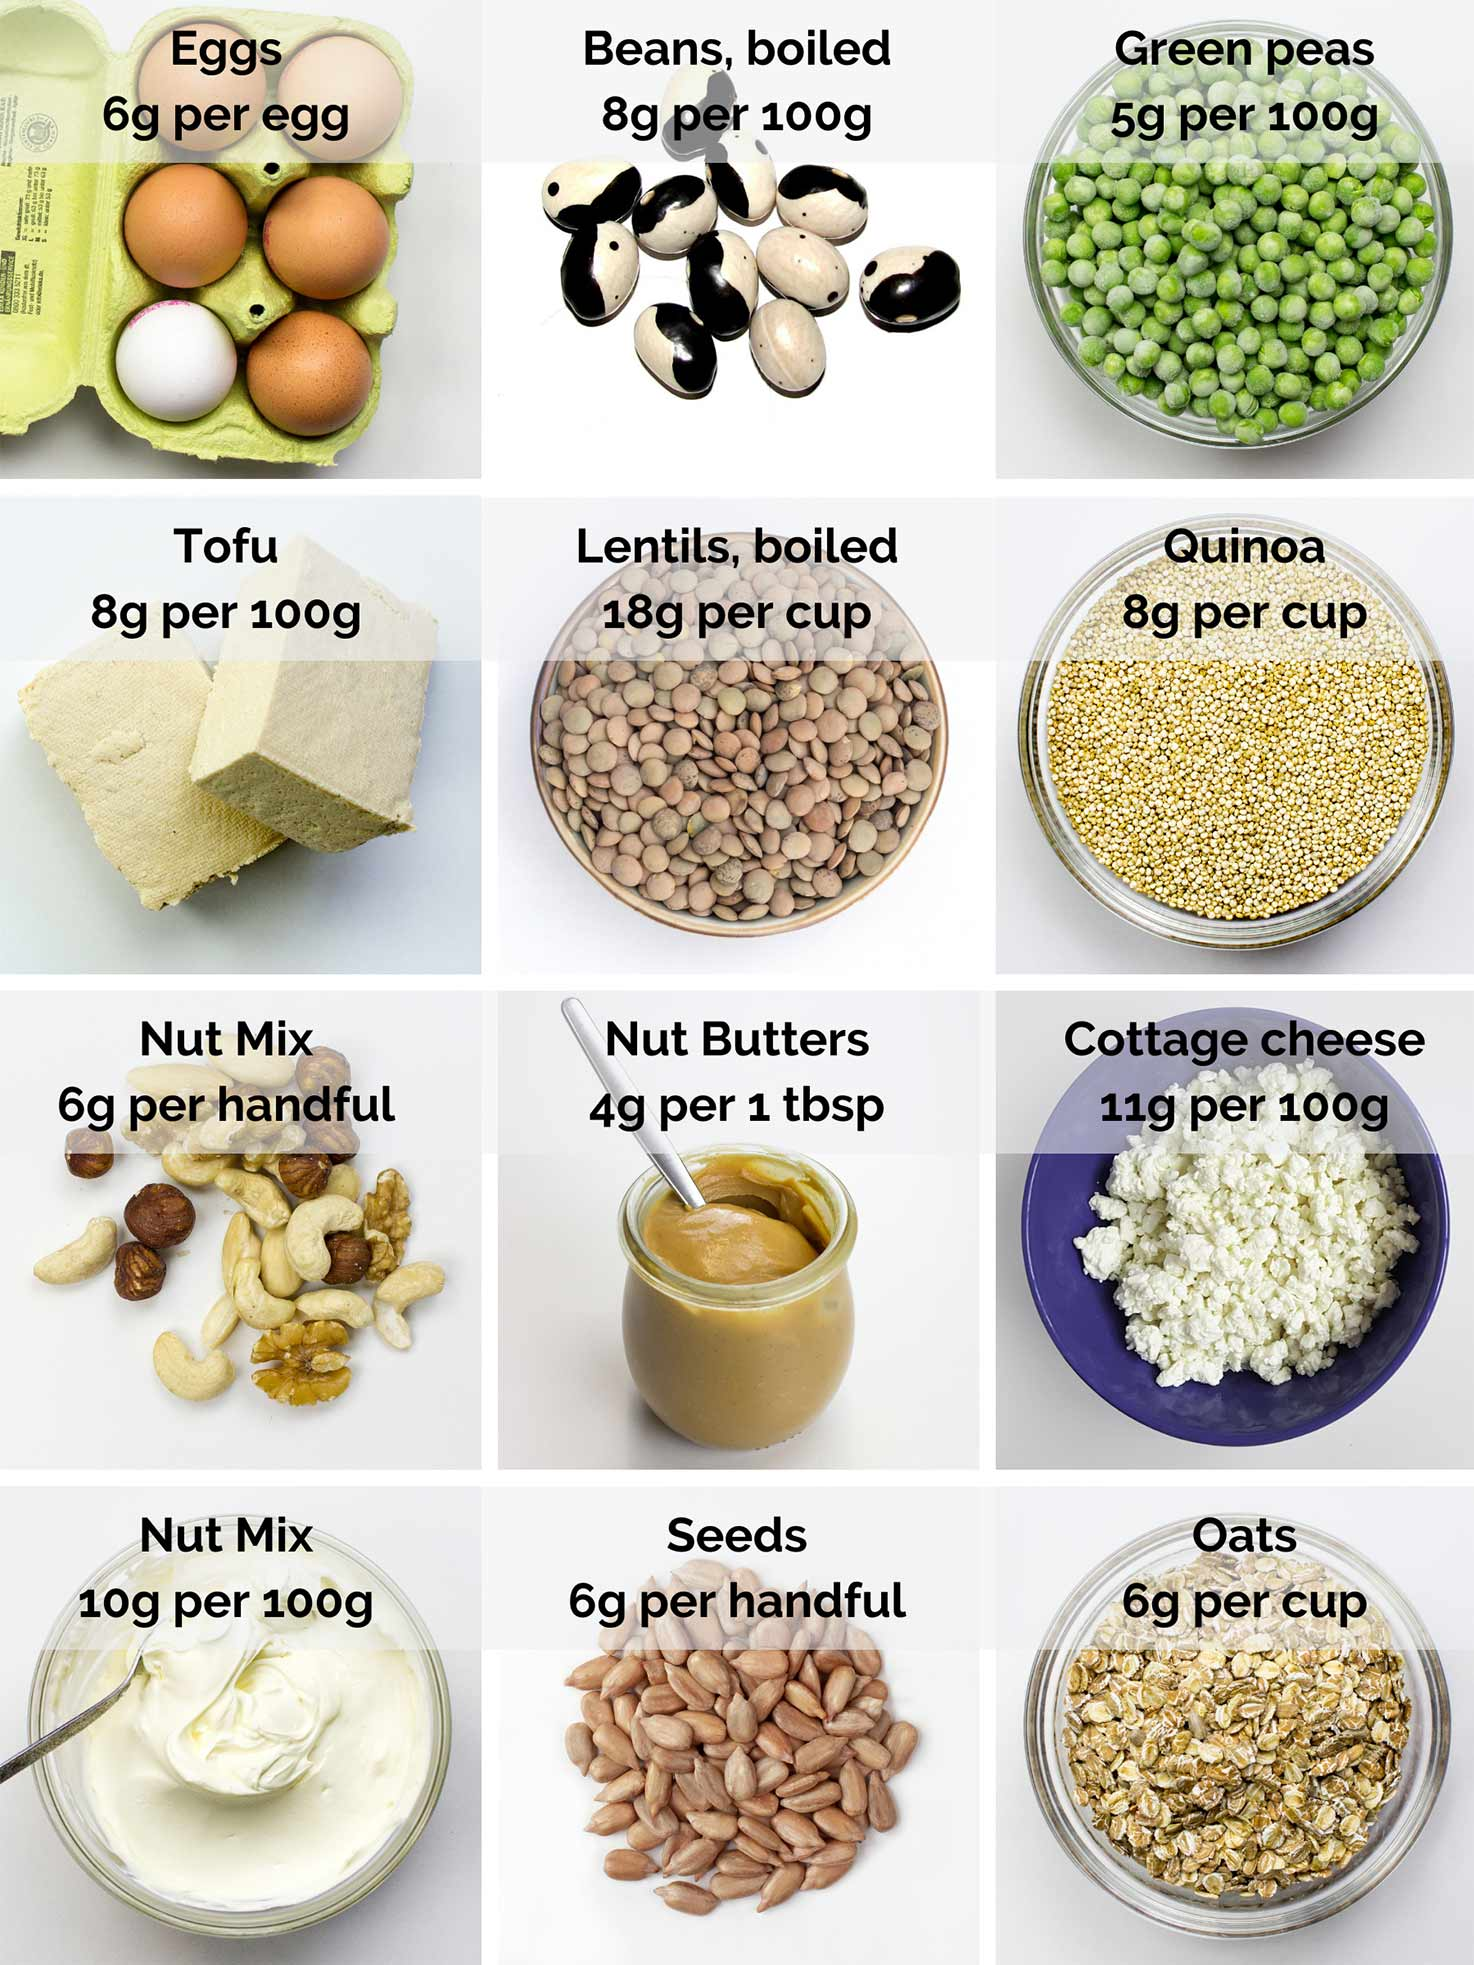 Vegetarian sources of Protein: egges, beans, green peas, tofu, lentils, quinoa, nuts, seeds, oats, cottage cheese| hurrythefoodup.com